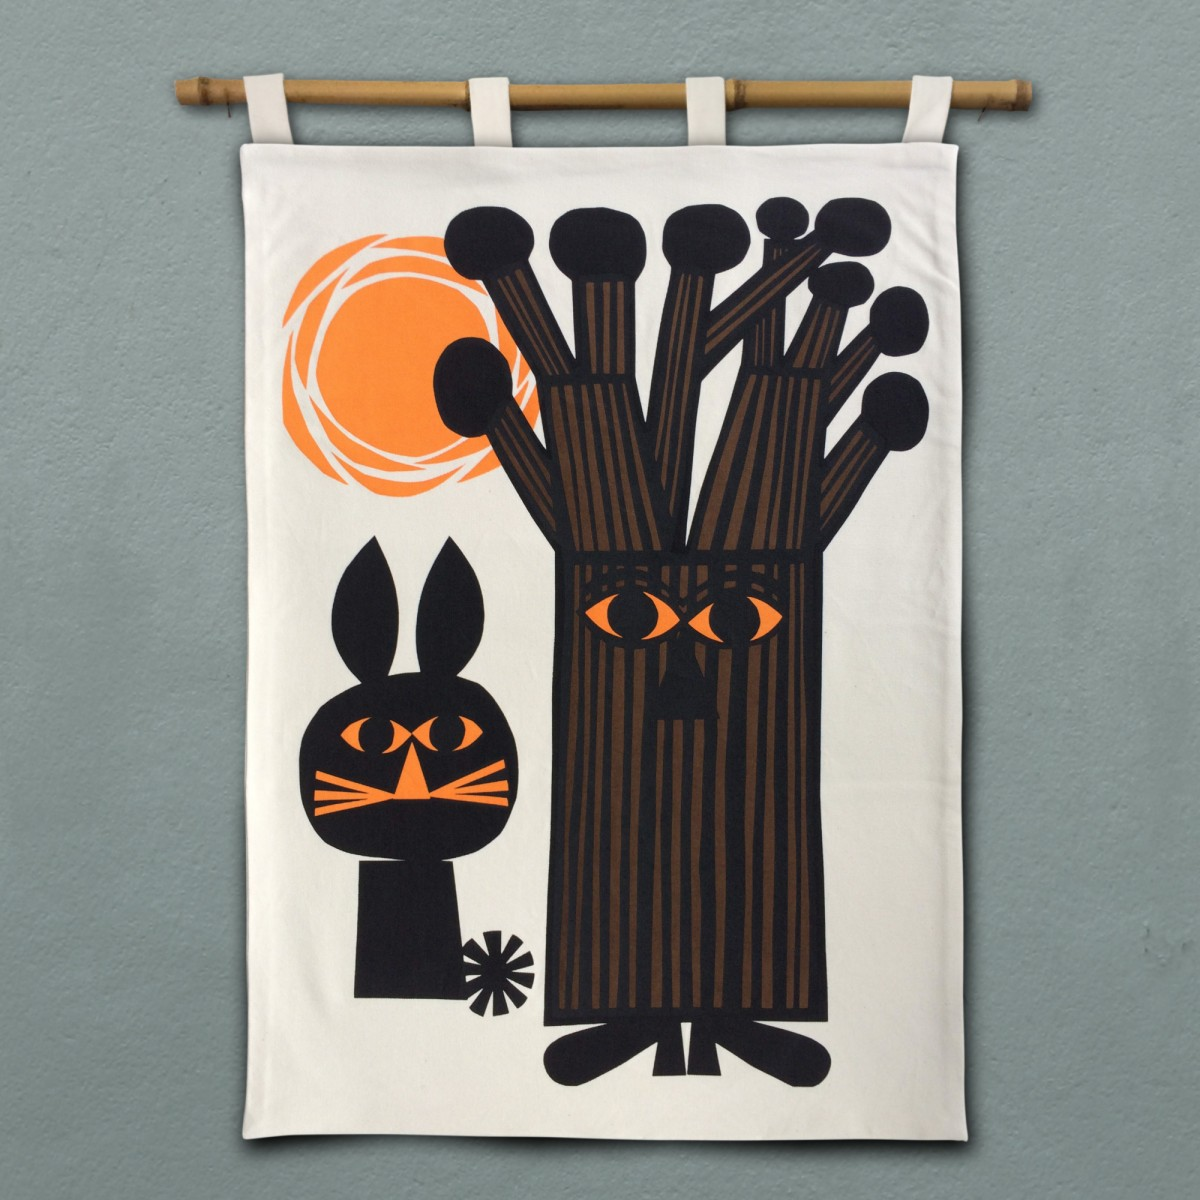 Print now - Riot later ● Knobbly Tree Wandbehang, Stoffsiebdruck